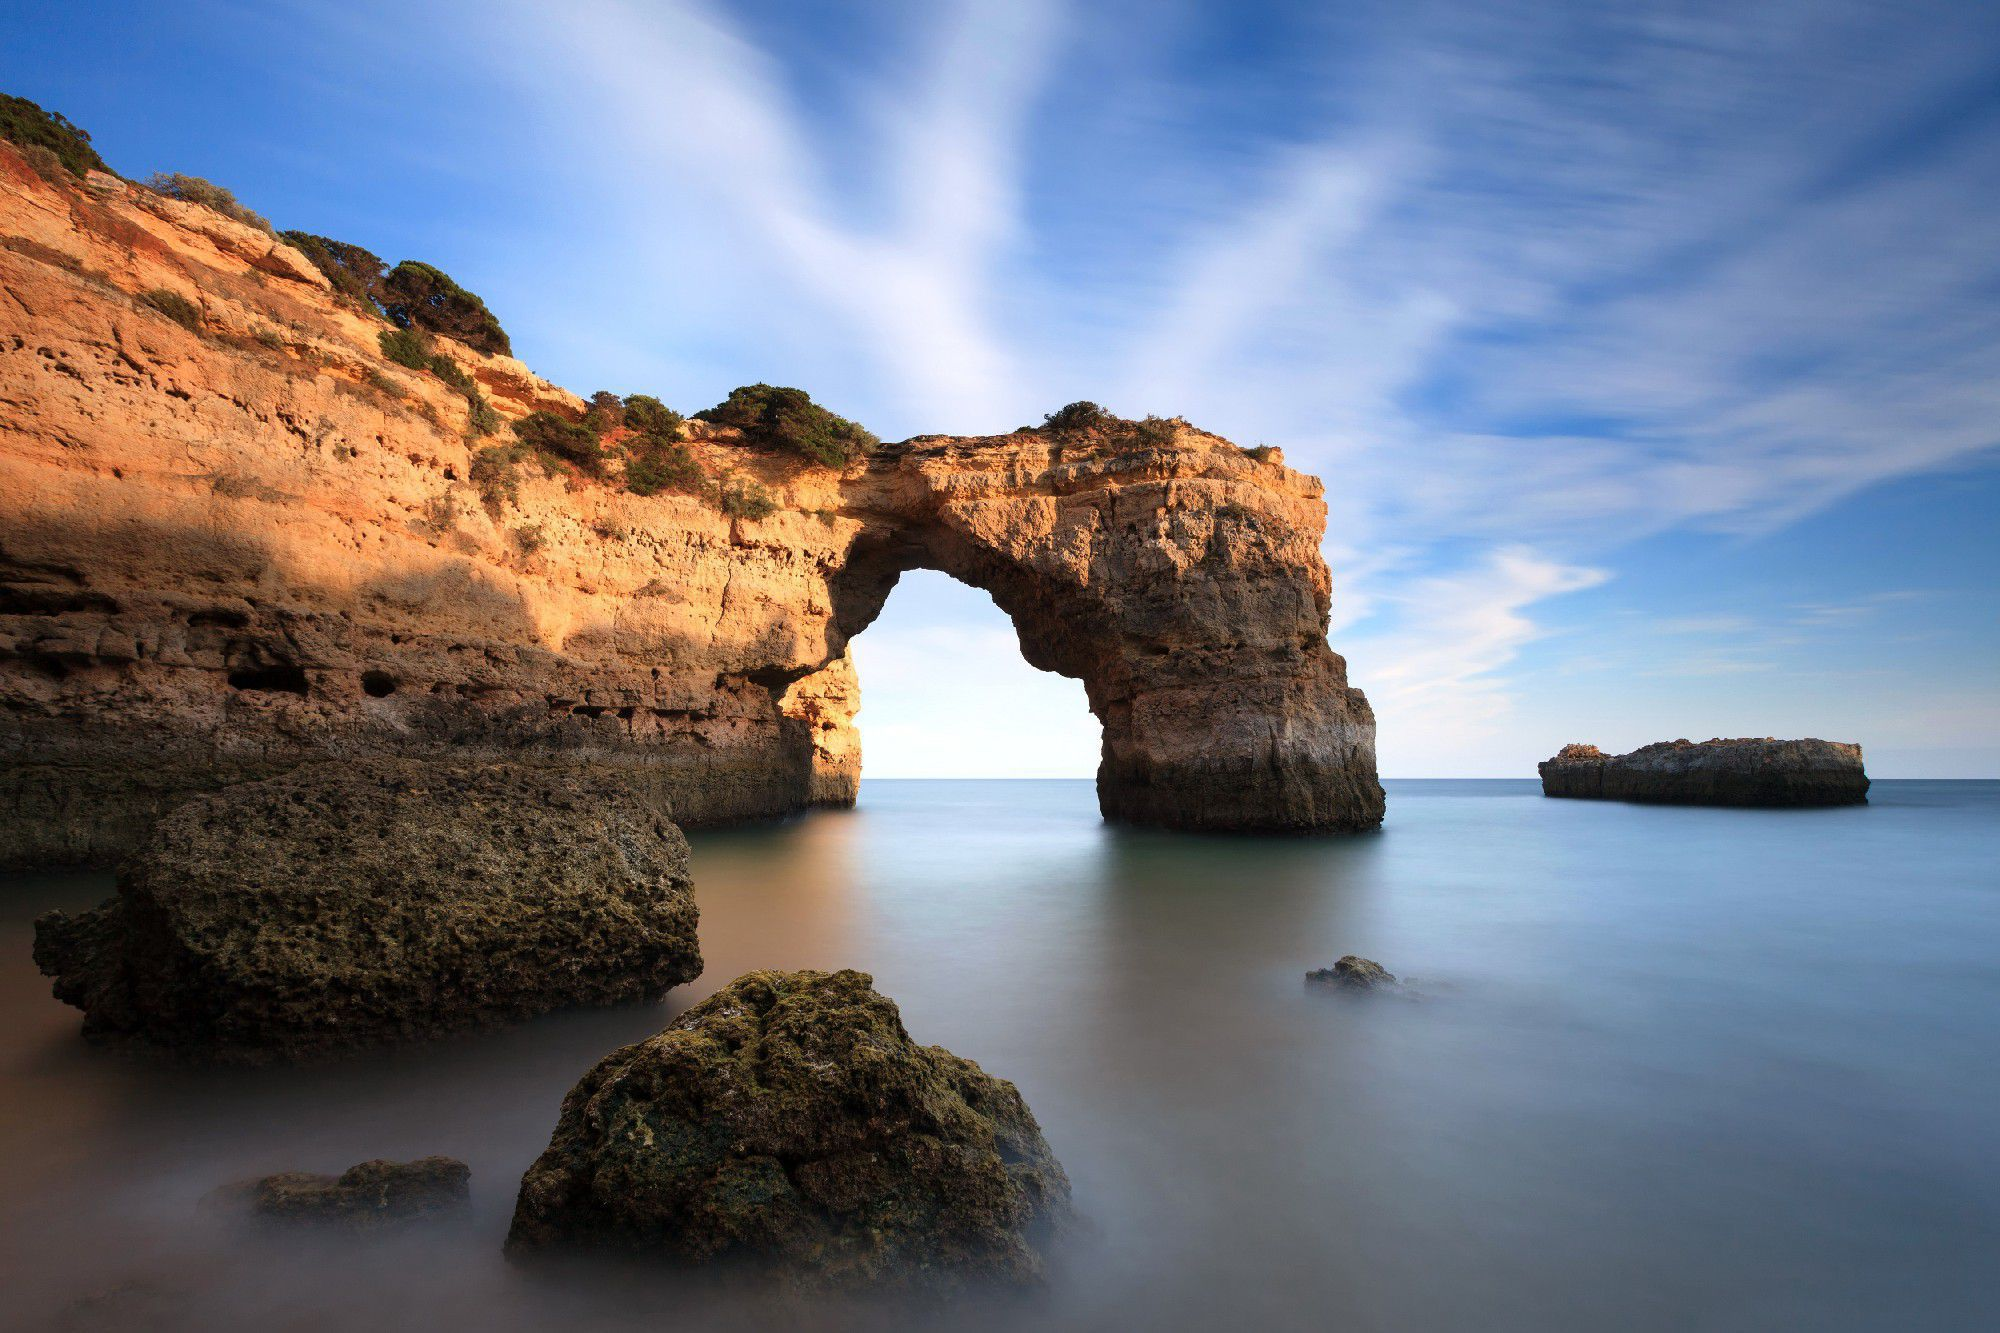 Arch High Definition Wallpapers